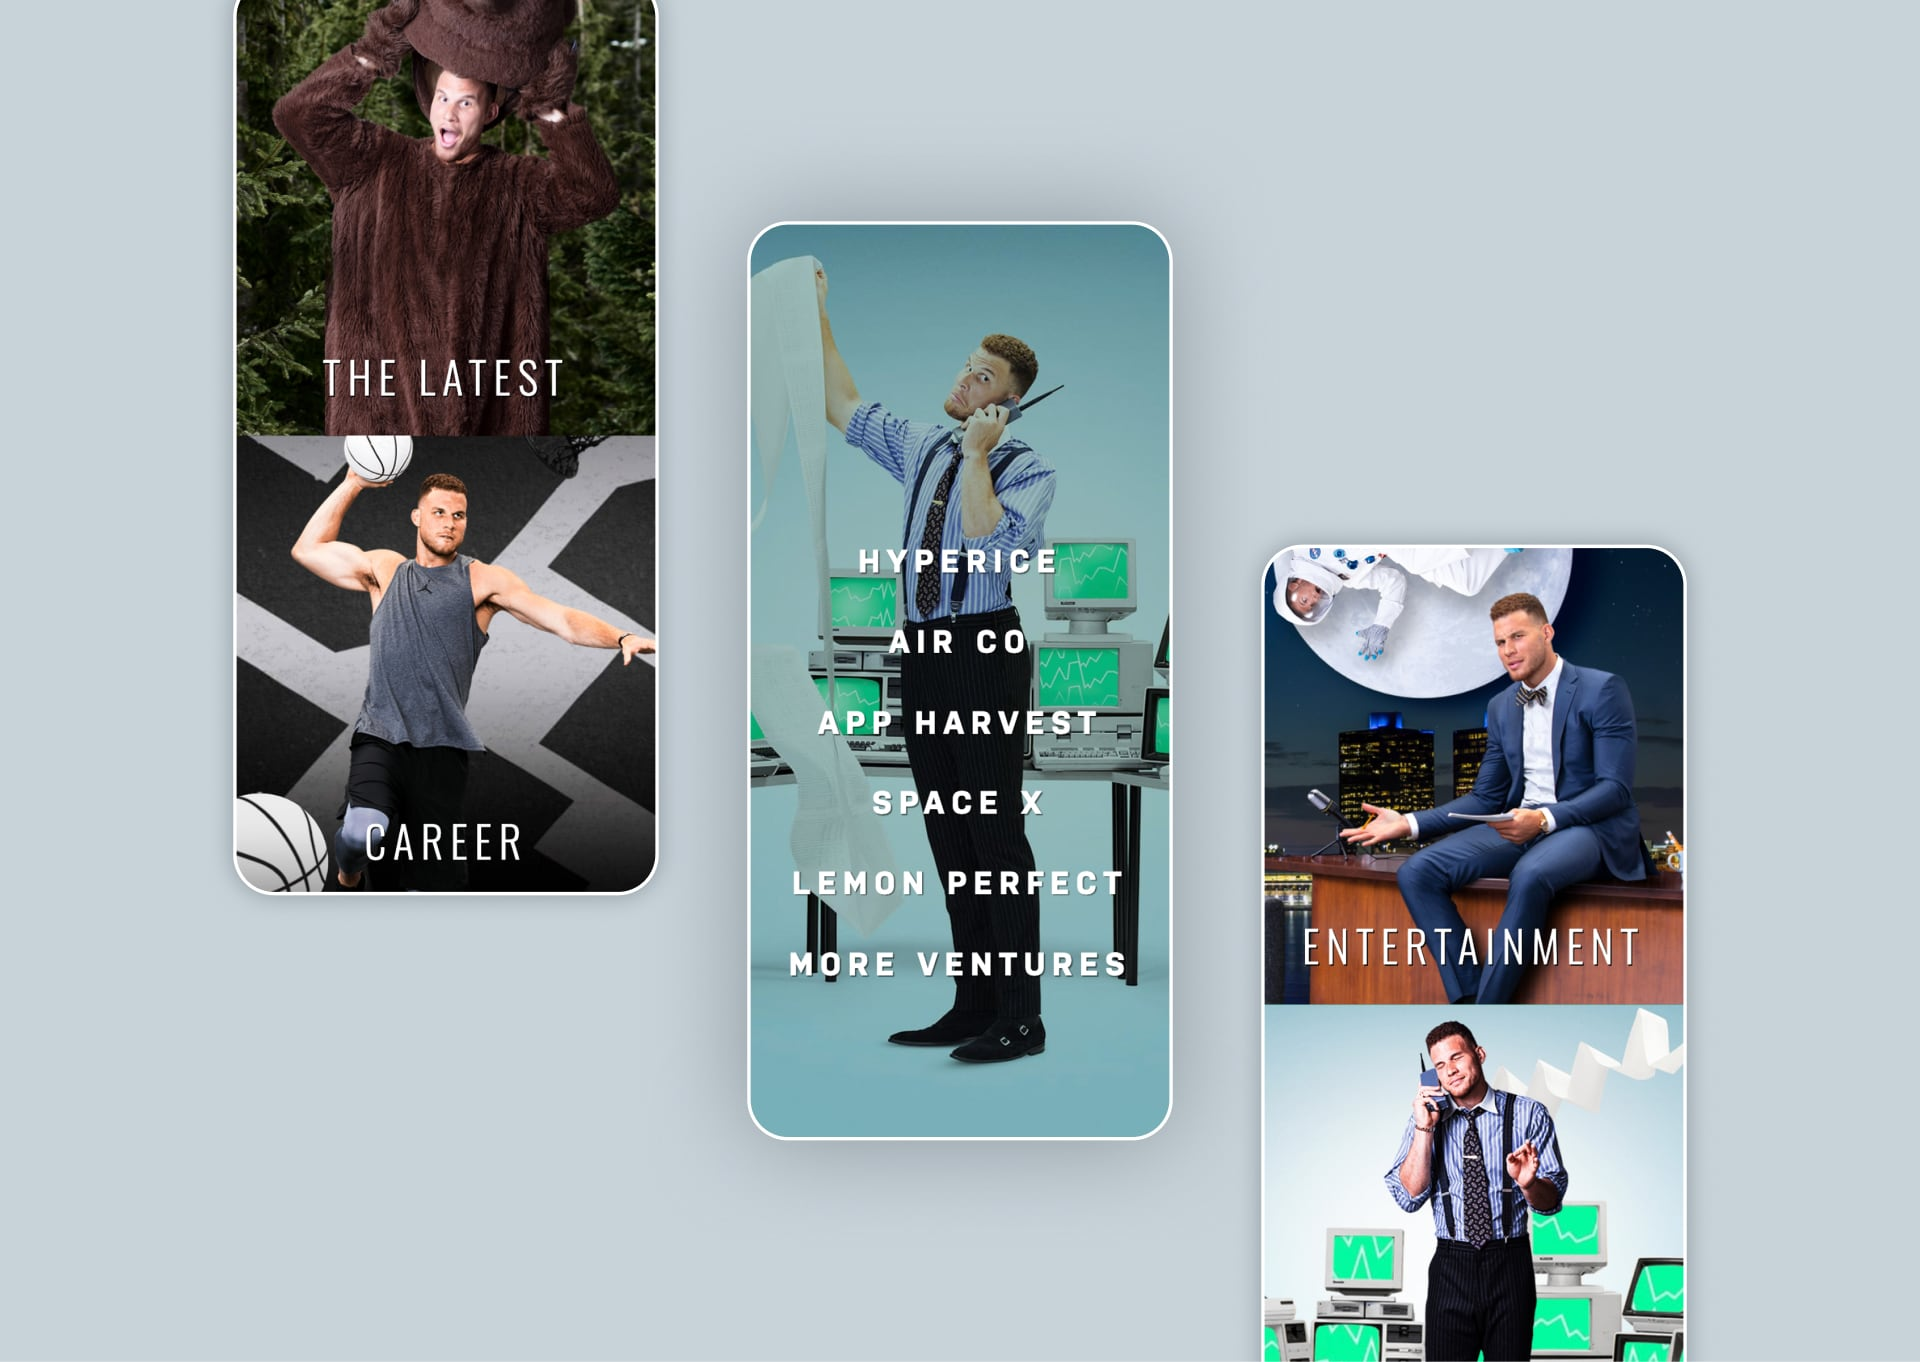 Mobile menu and screens for the mobile version of the Blake Griffin website